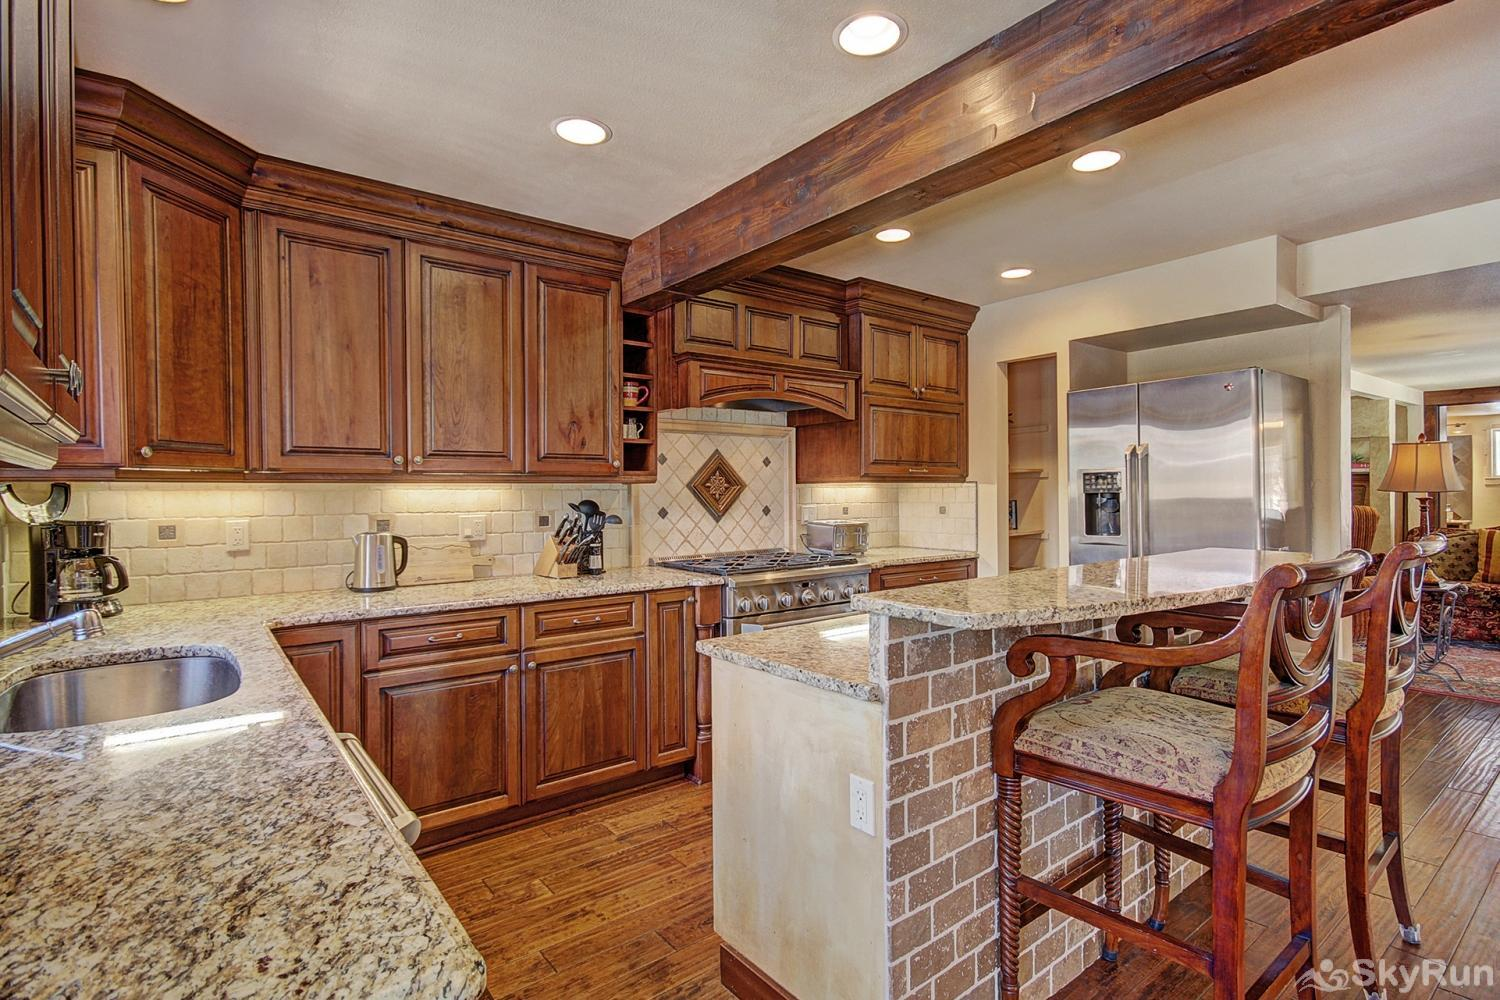 High Point Chateau Large fully equipped kitchen for preparing delicious homemade meals